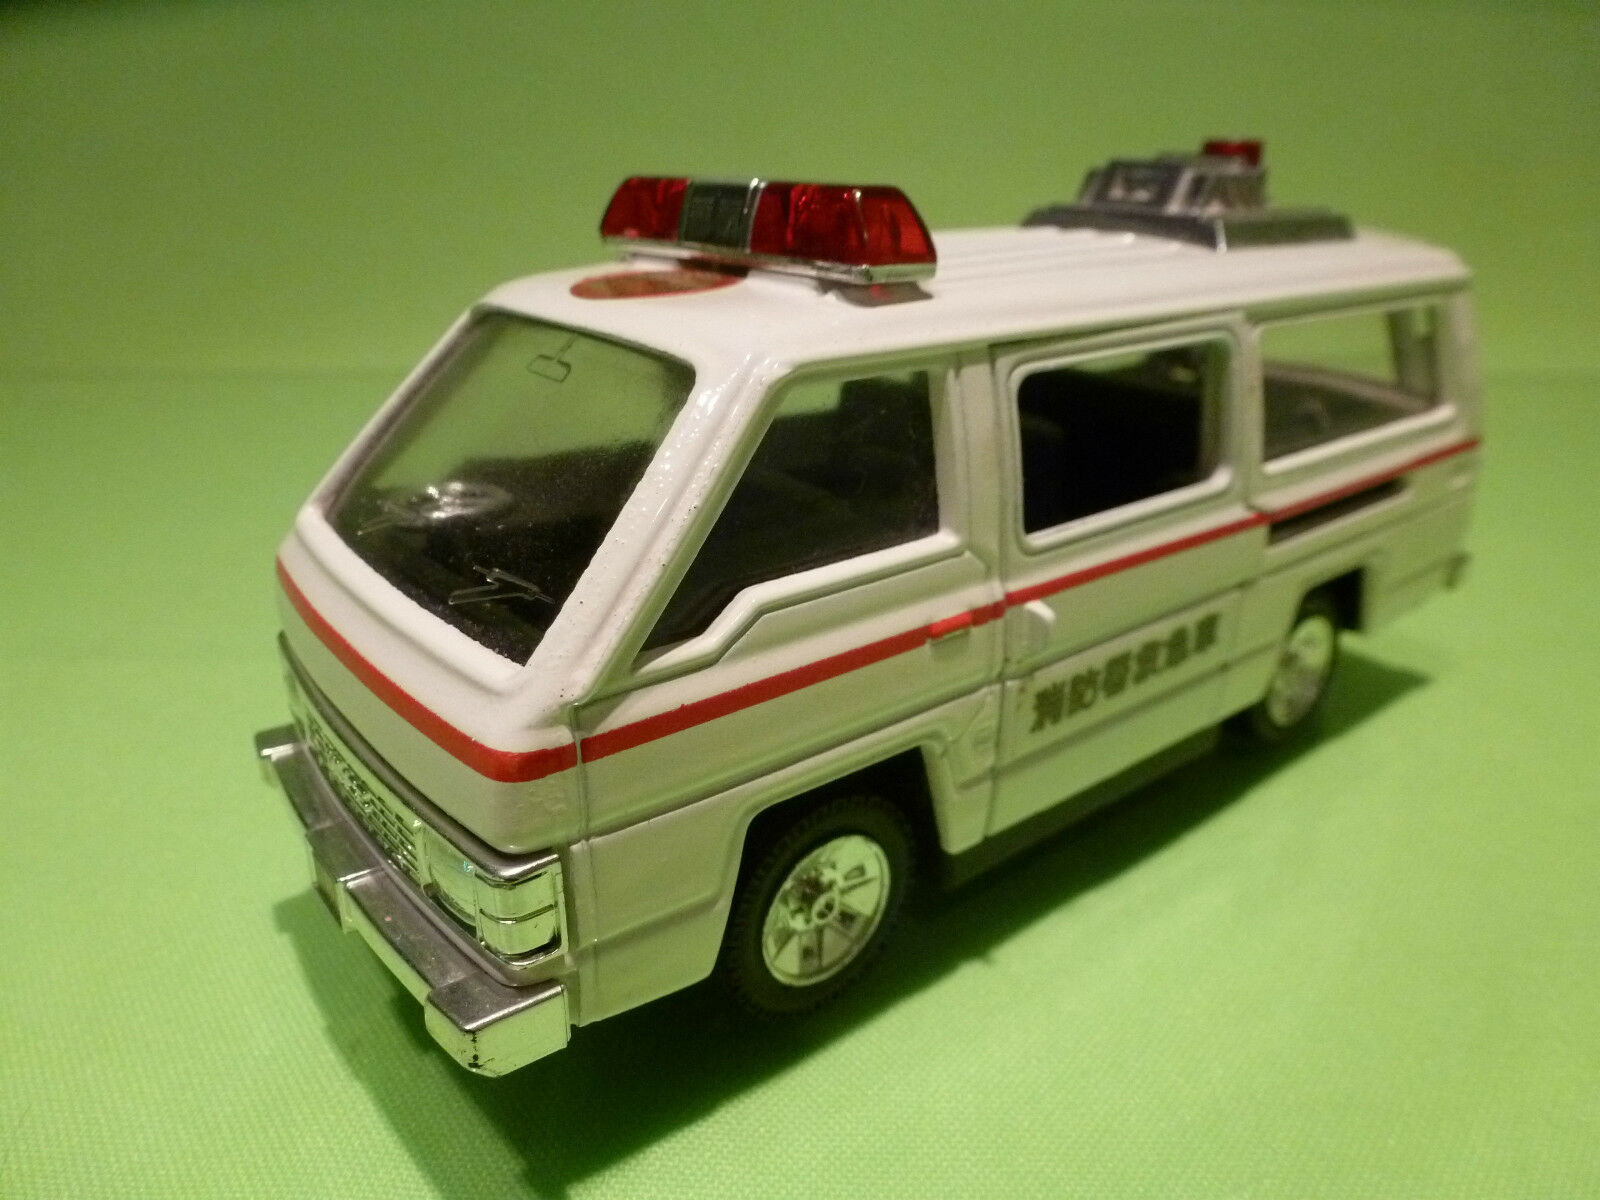 DIAPET japan 122 1 35 TOYOTA HIACE - AMBULANCE - RARE SELTEN - GOOD CONDITION